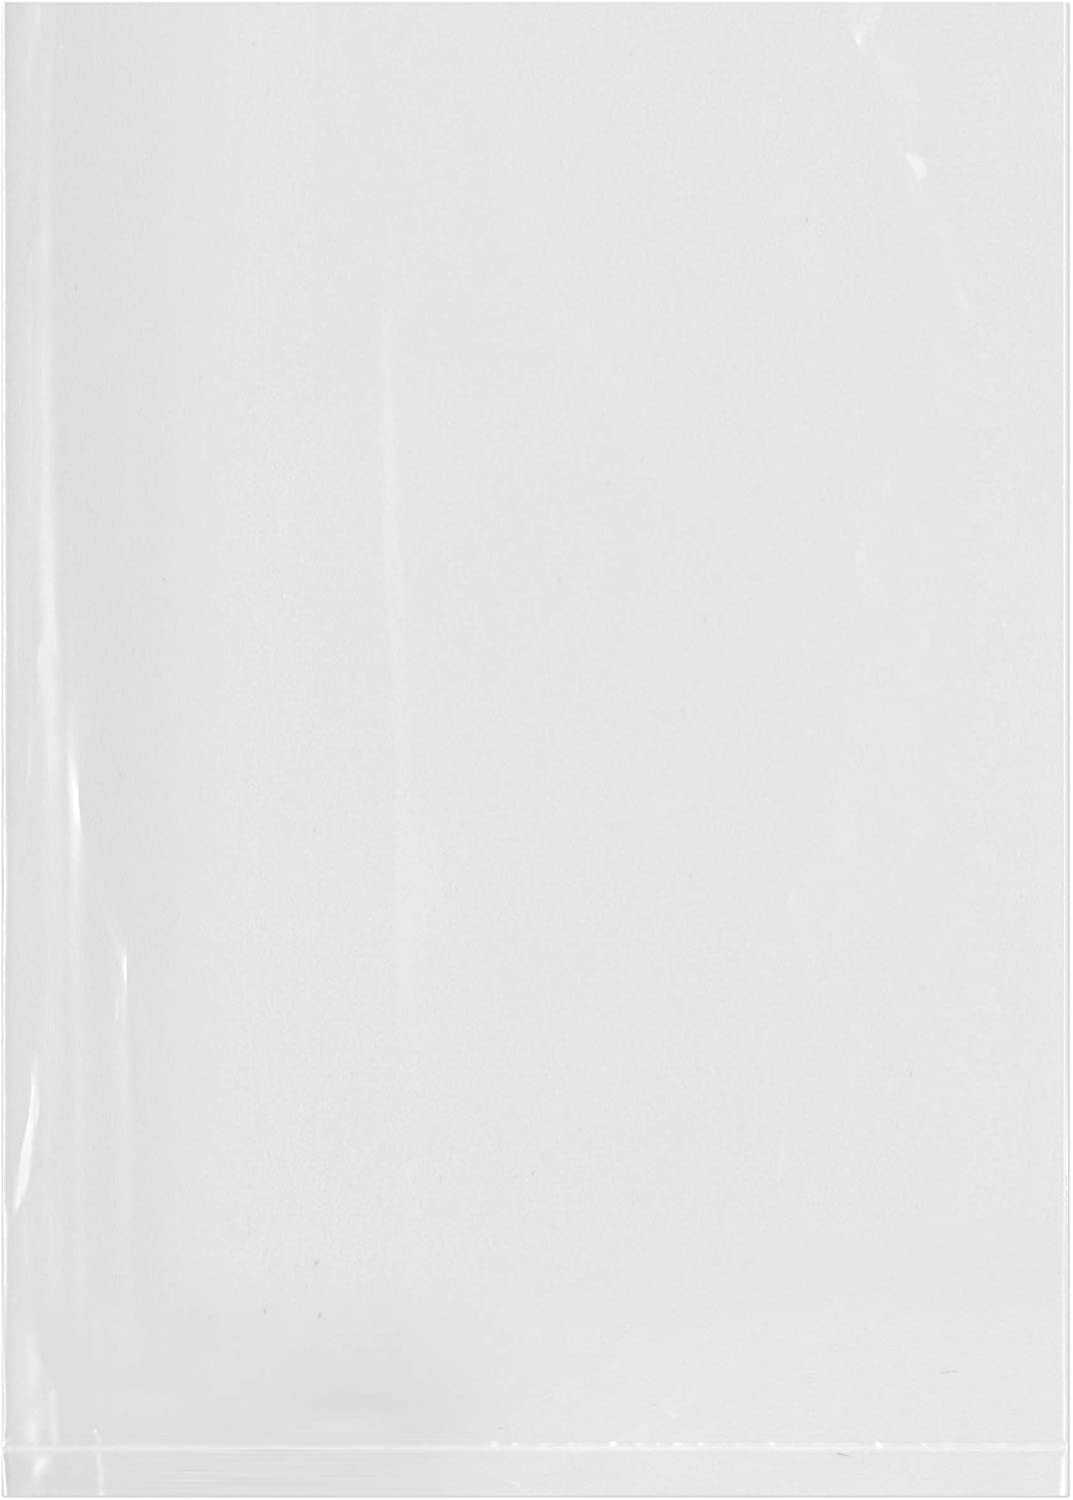 Plymor Flat Open Clear Plastic Poly Bags, 2 Mil, 5 x 7, case of 1000